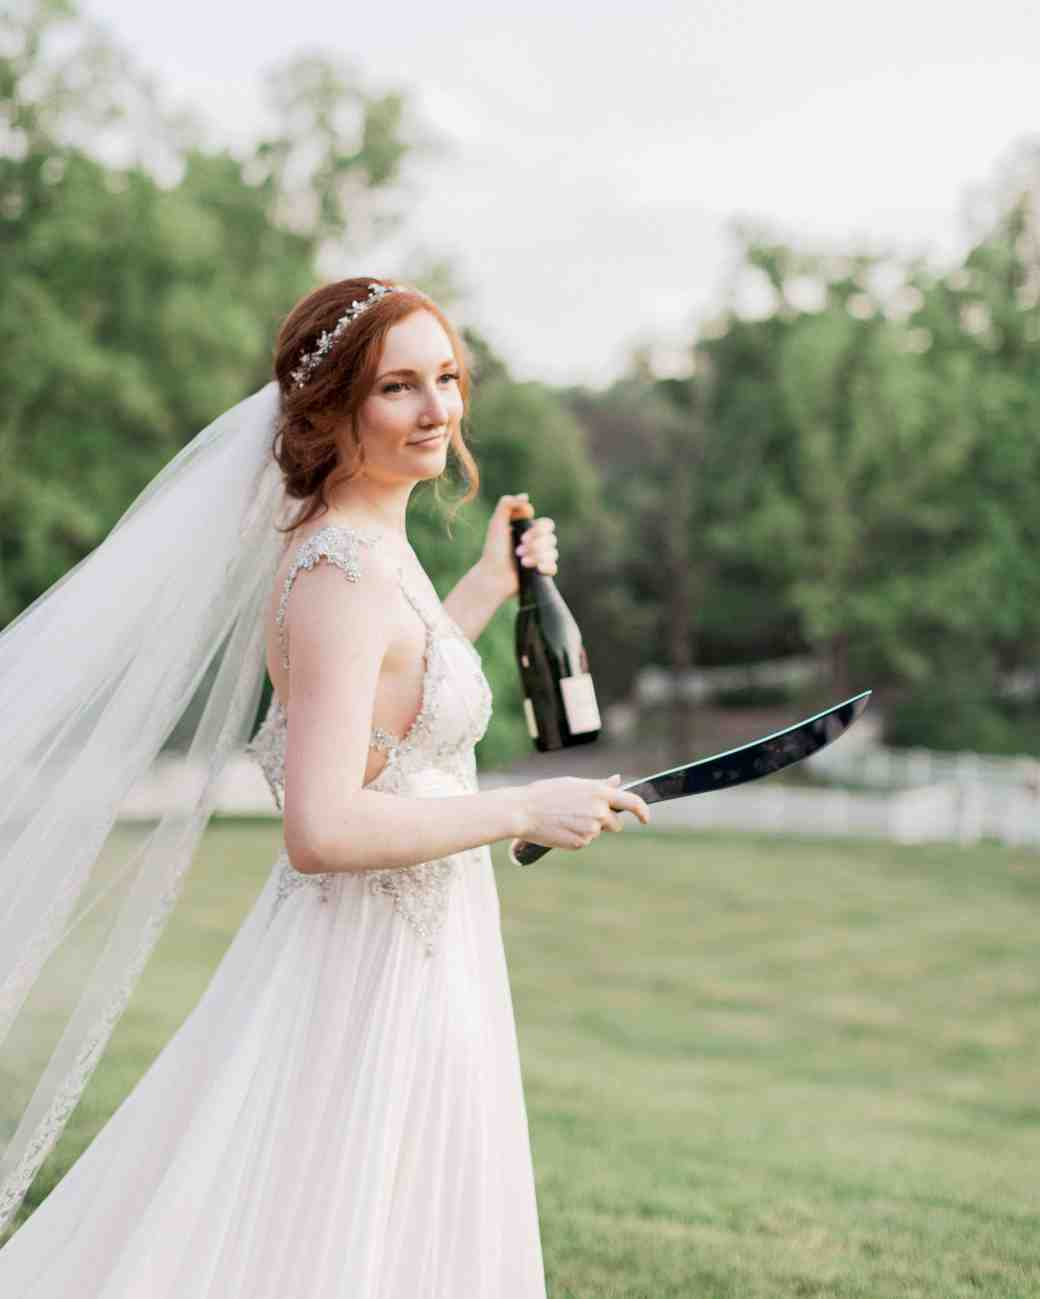 bride sabered champagne